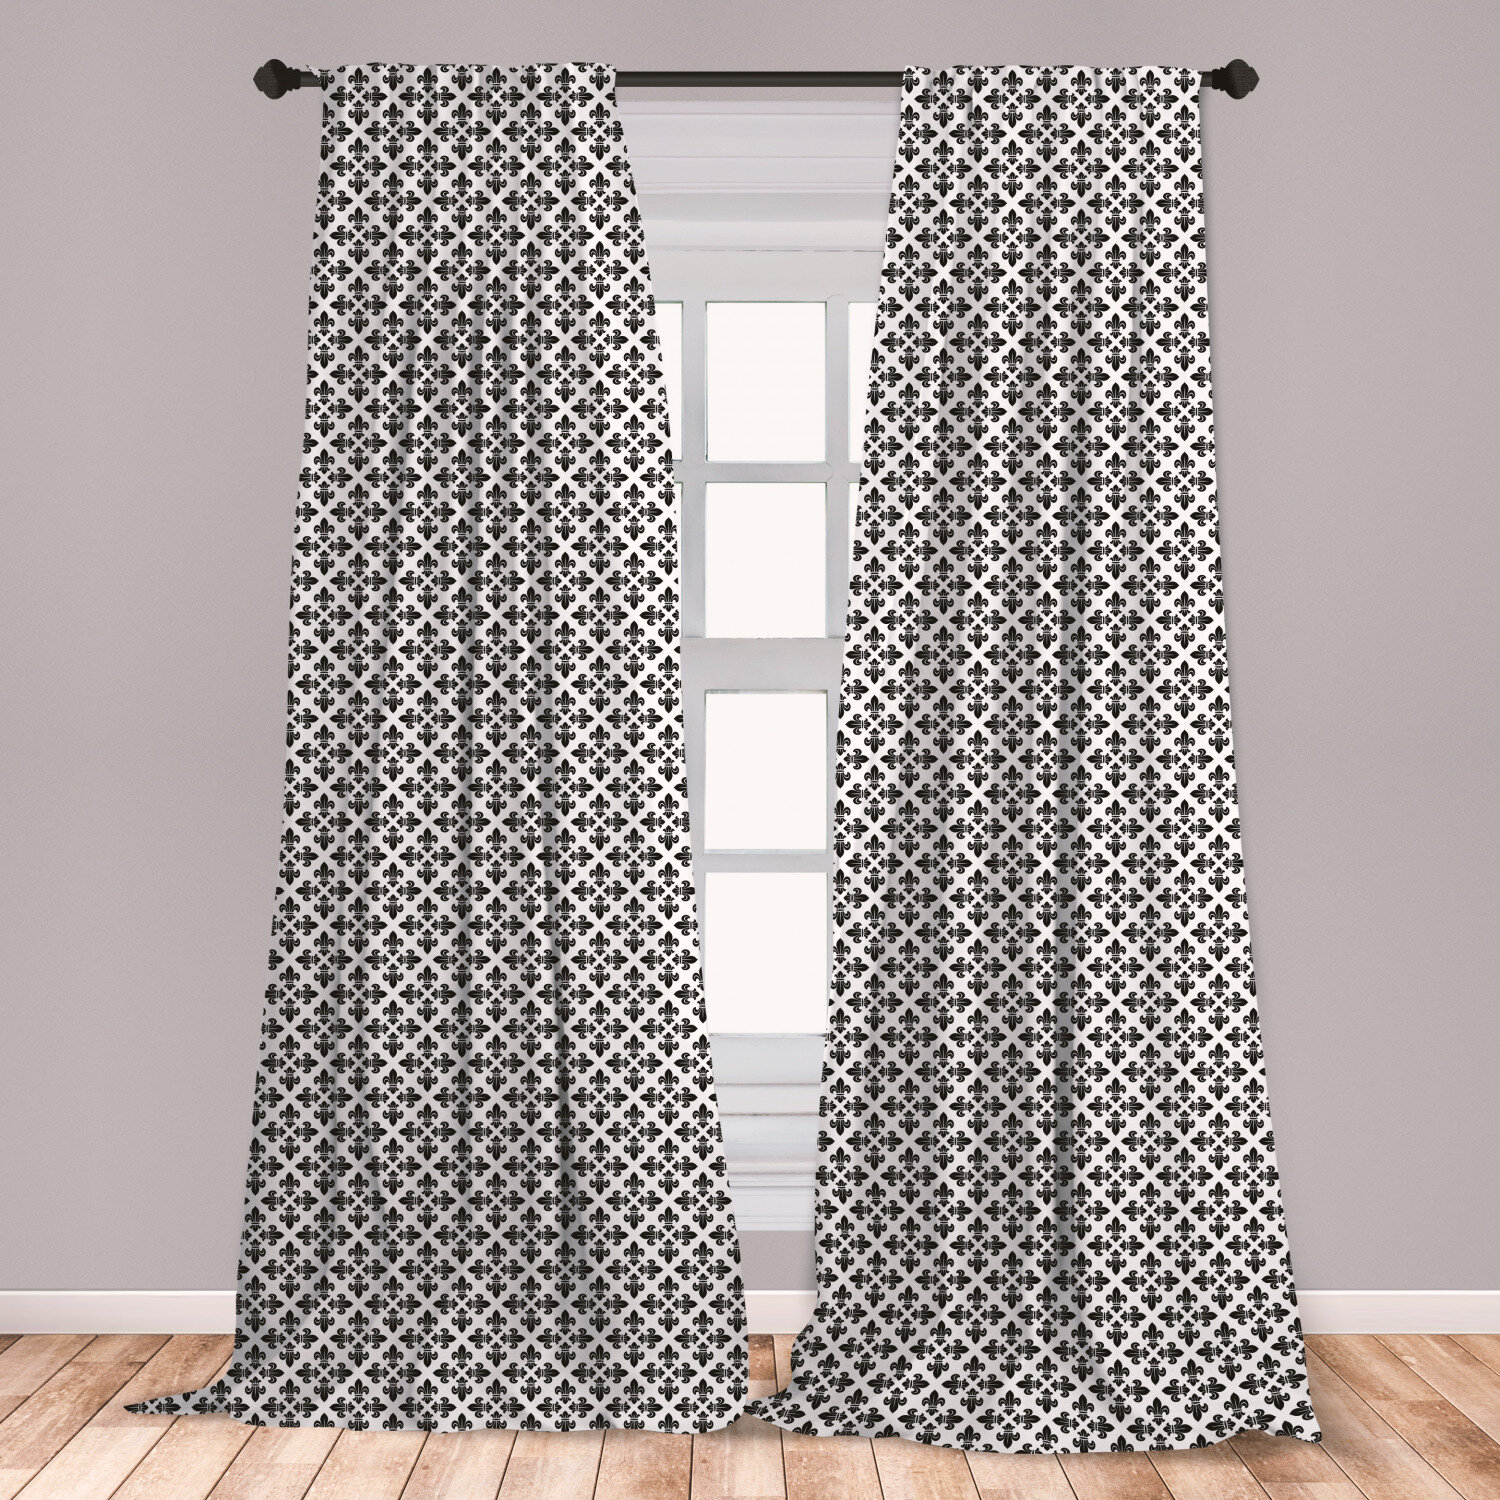 Ambesonne Fleur De Lis Curtains Monochrome Abstract Curvy Ornament Graphic Traditional Swirls Curls Window Treatments 2 Panel Set For Living Room